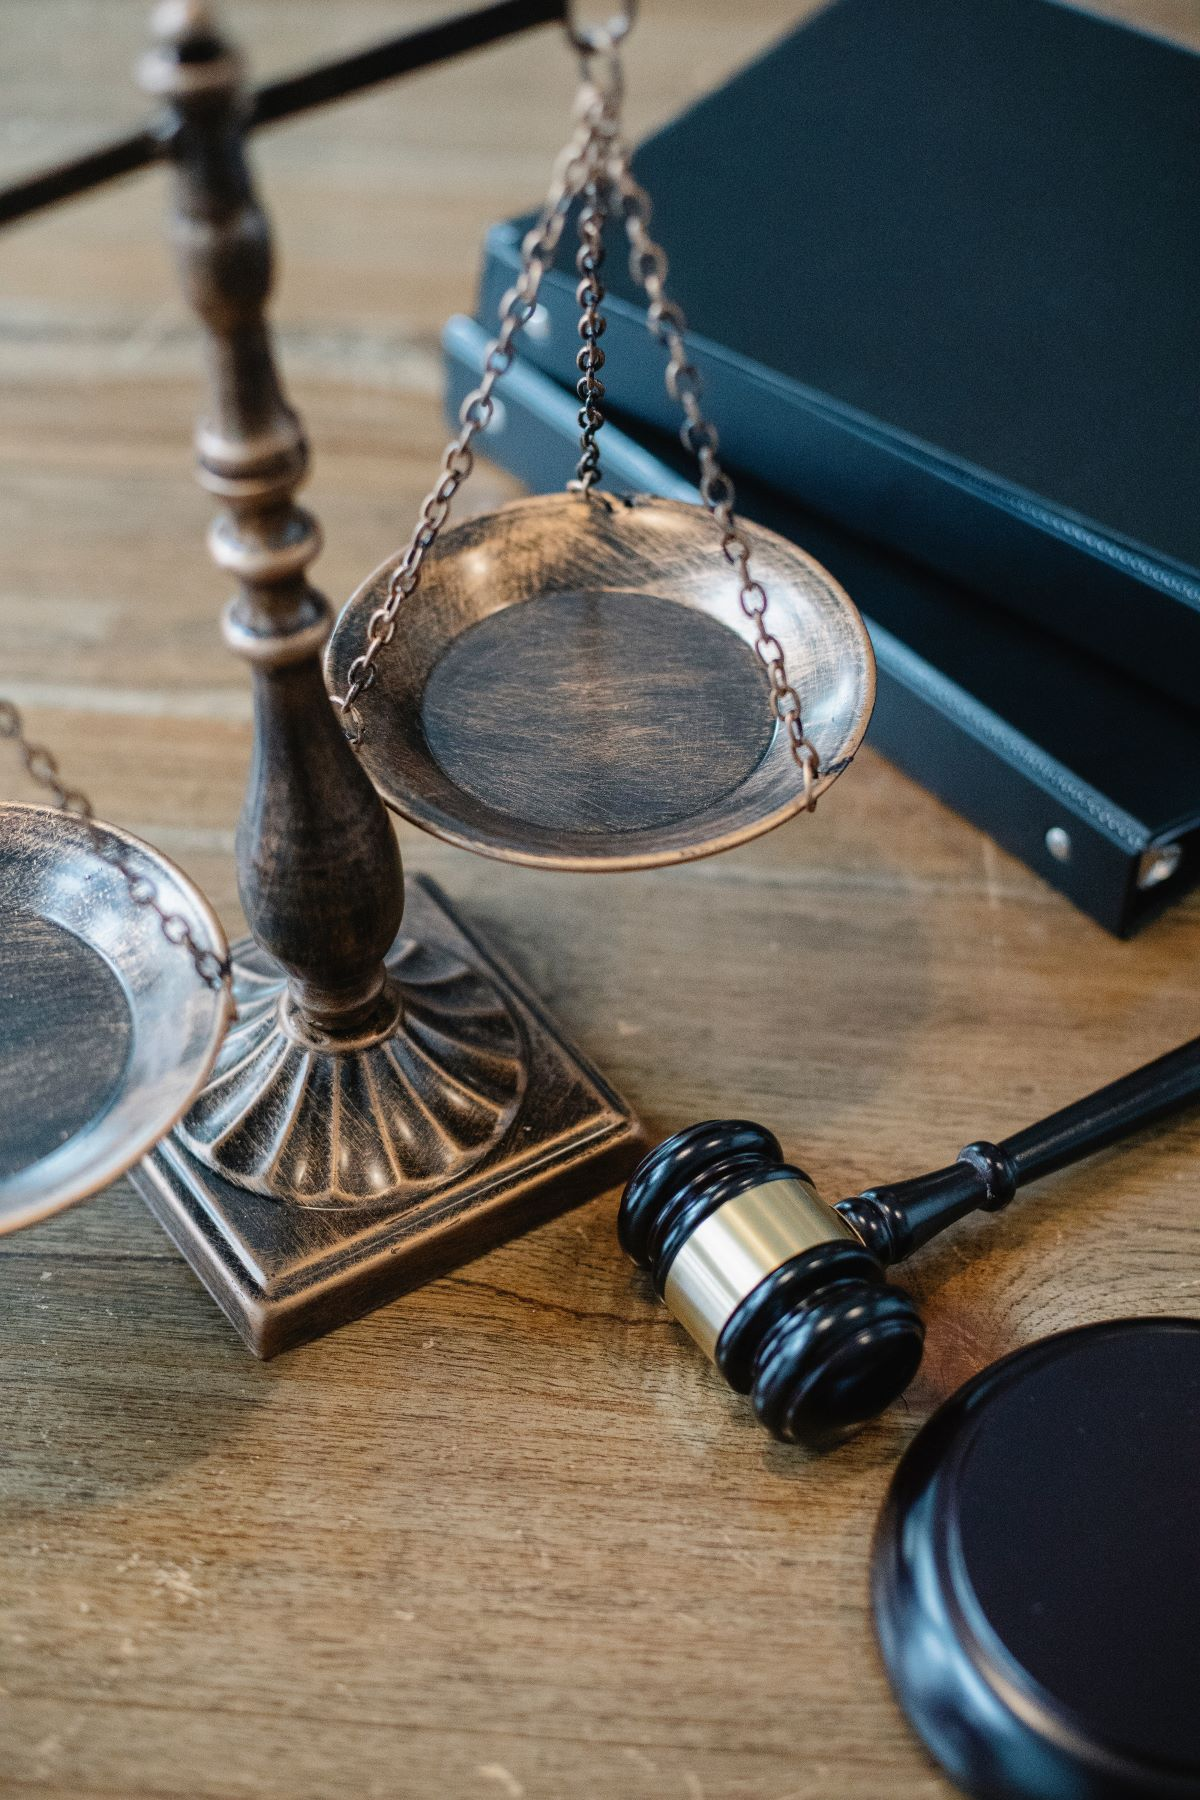 gavel on desk with scales of justice